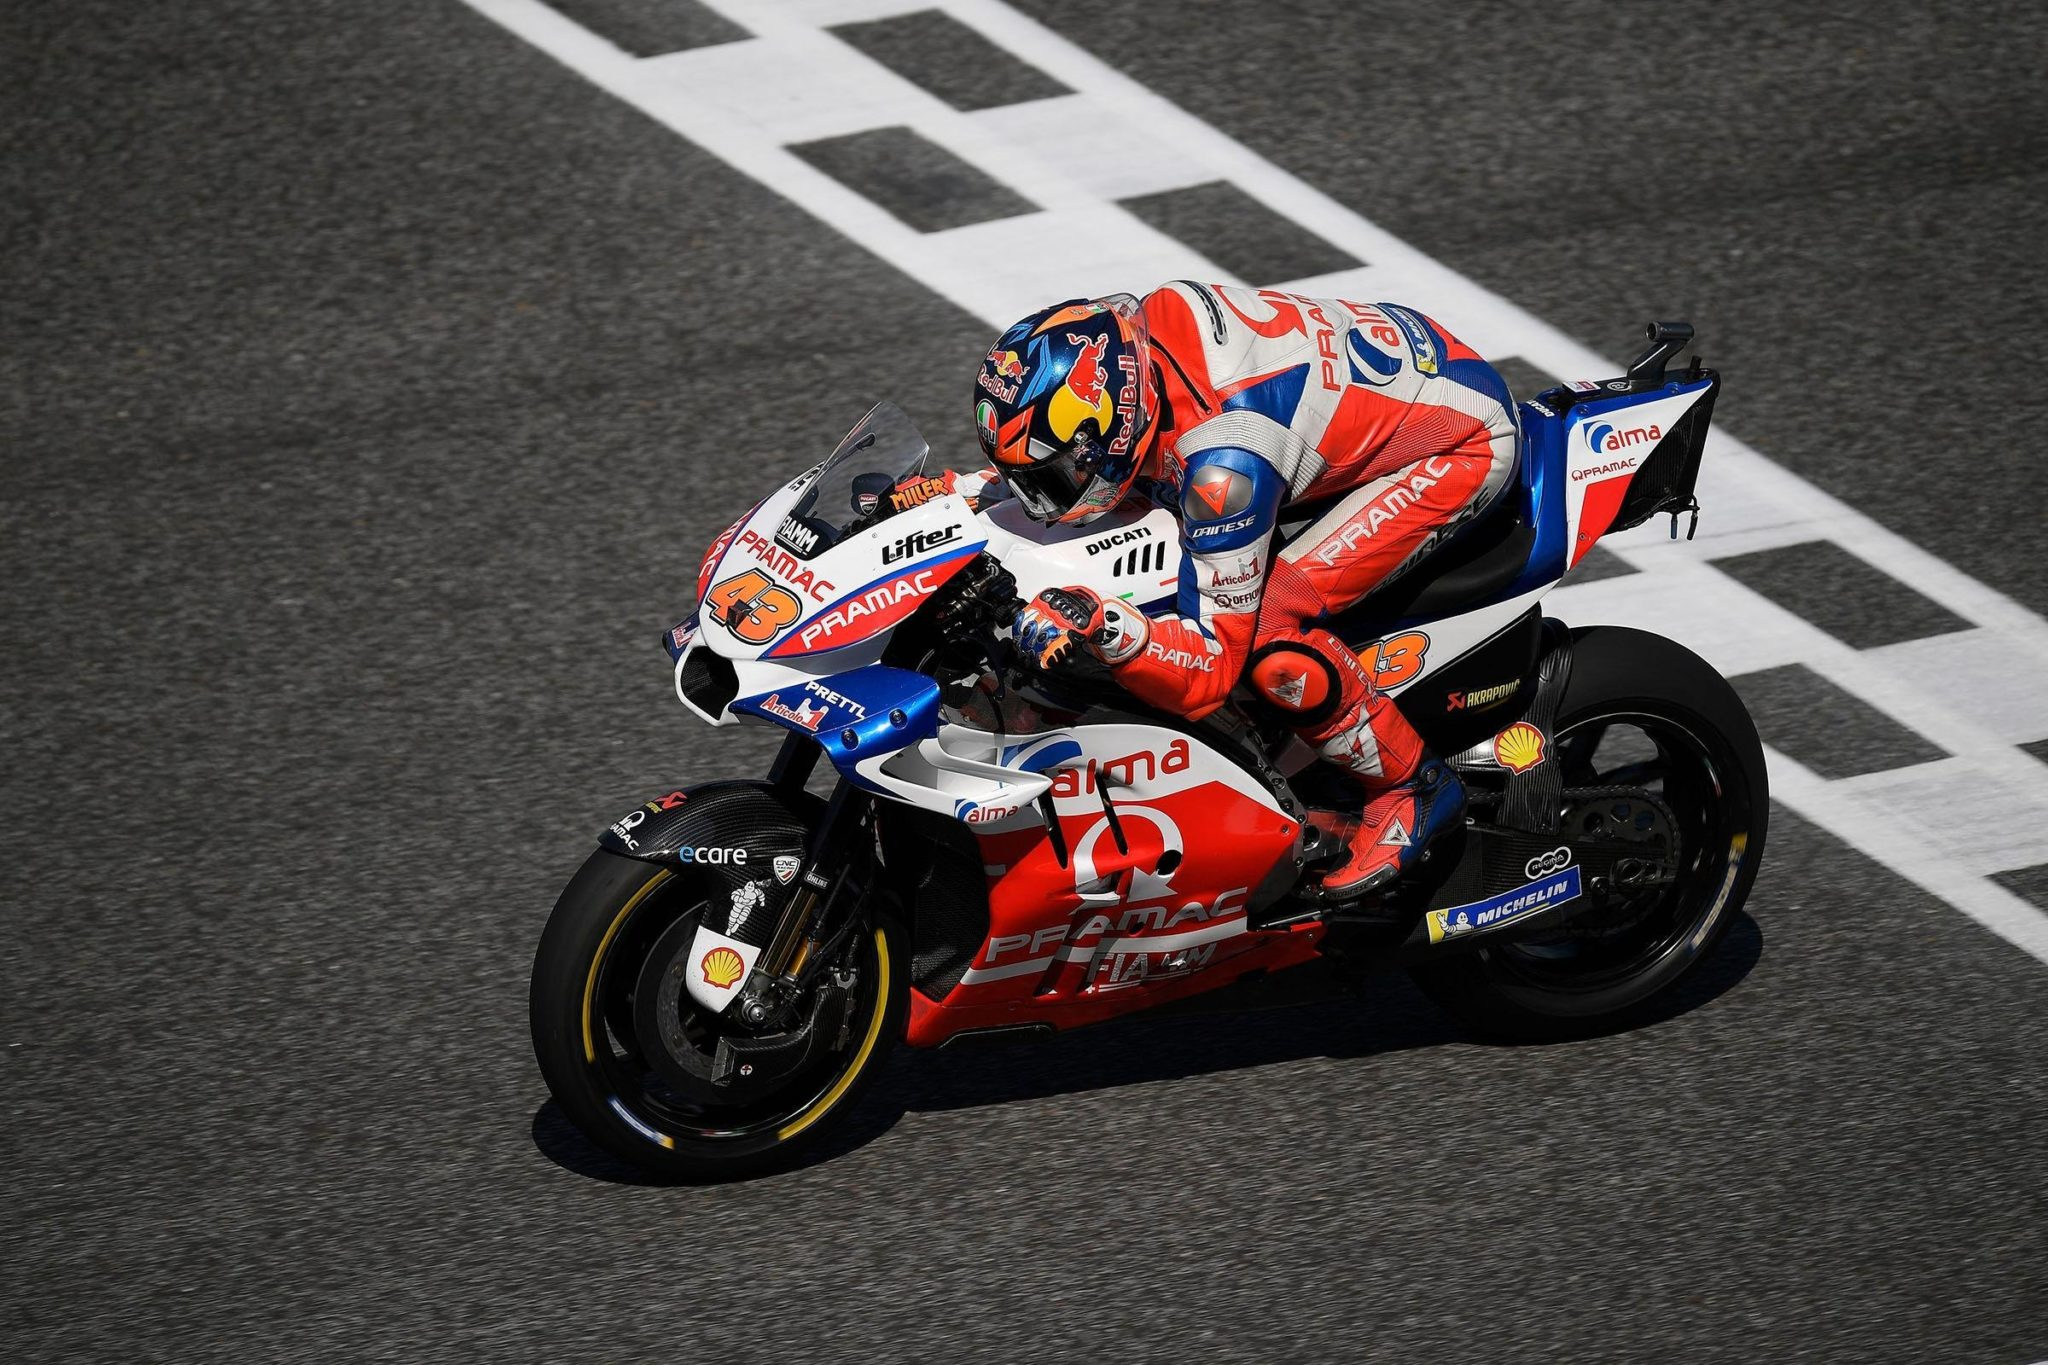 Ducati selling 6 MotoGP bikes to special customers